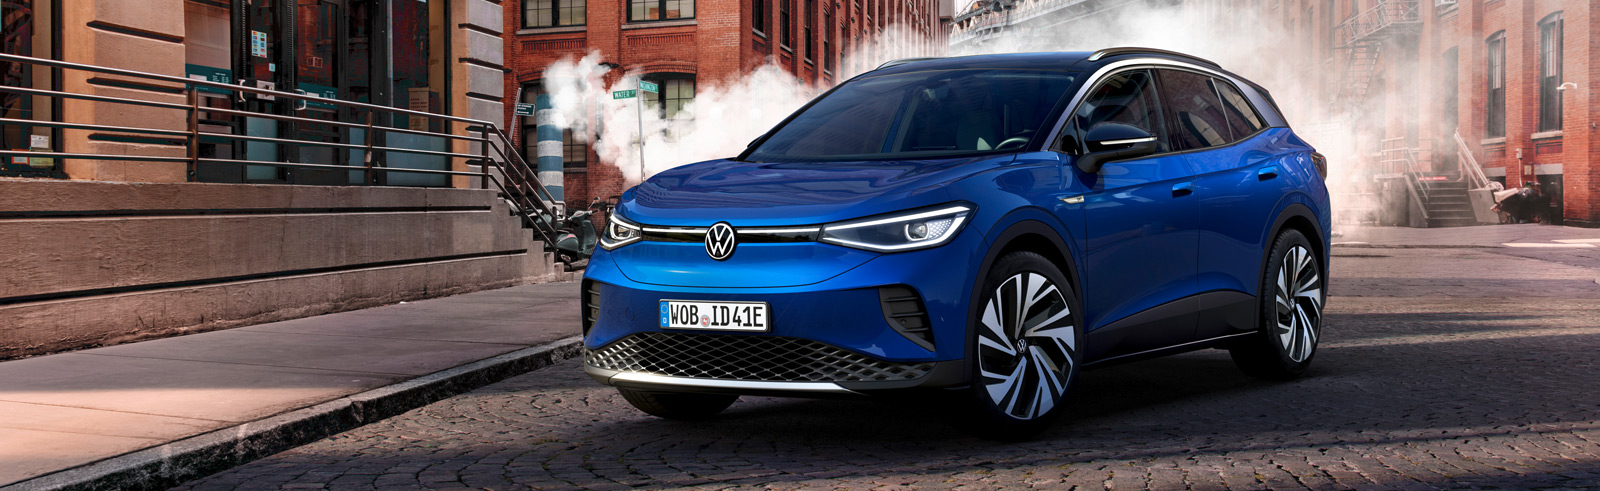 The Volkswagen ID.4 wins World Car of the Year 2021 award